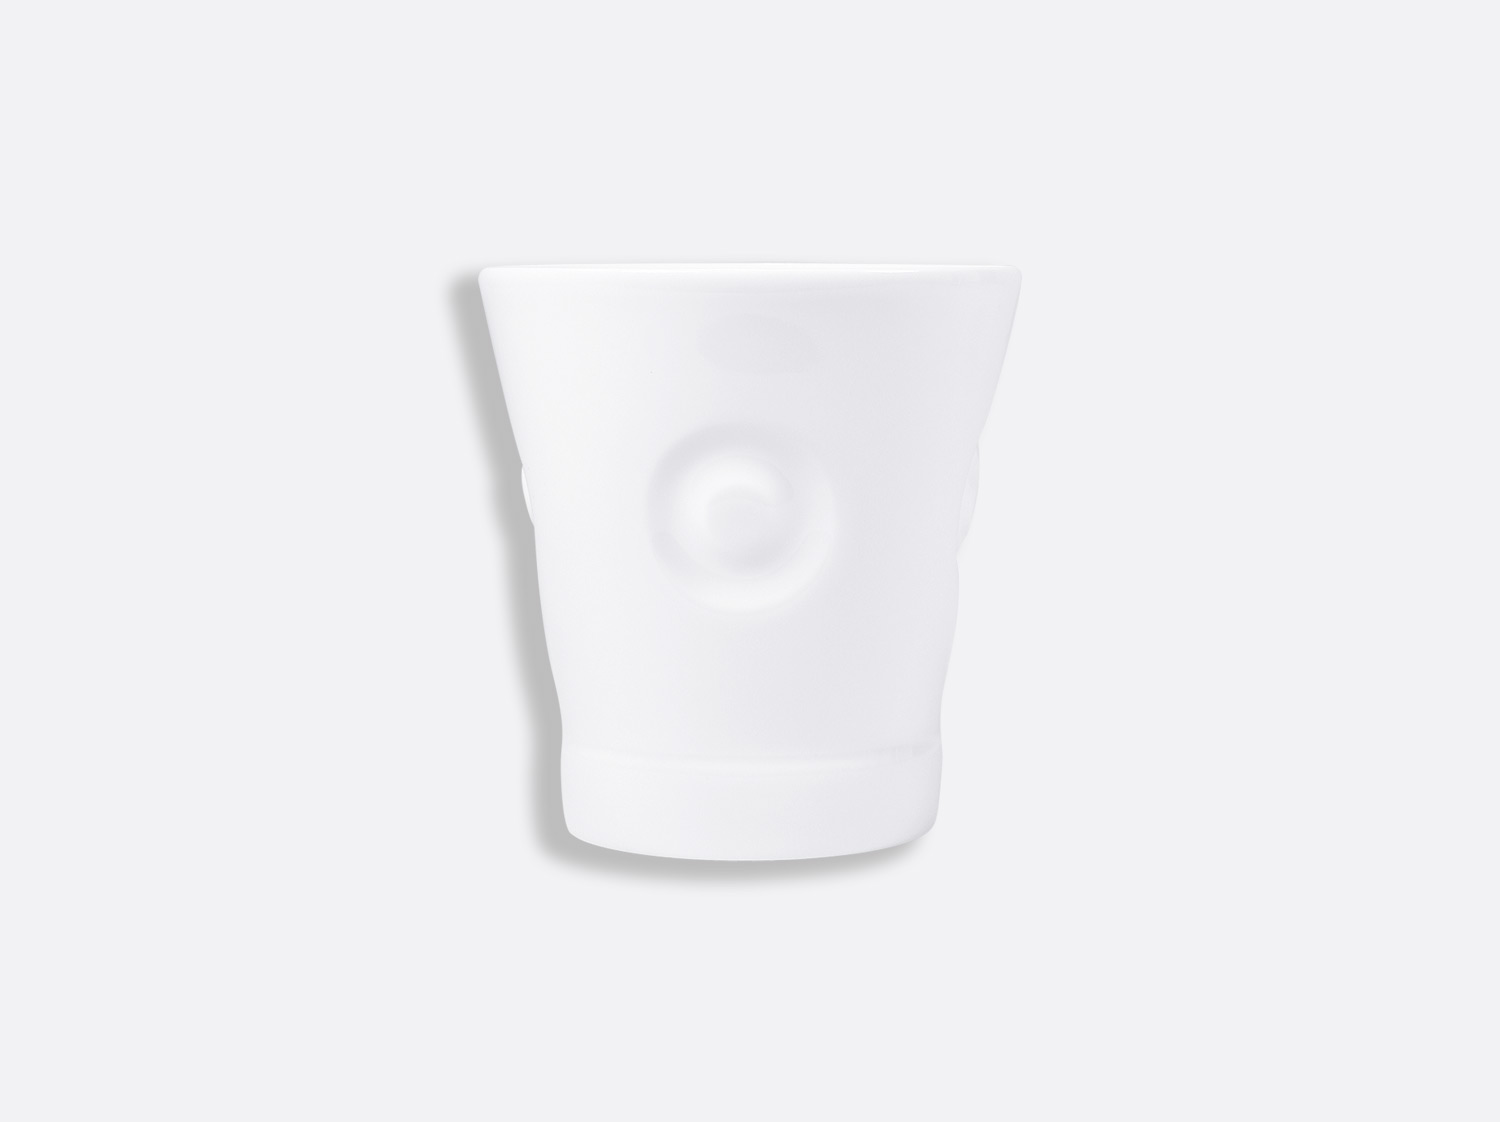 China Eolie goblet 25 cl of the collection Fantaisies blanches | Bernardaud